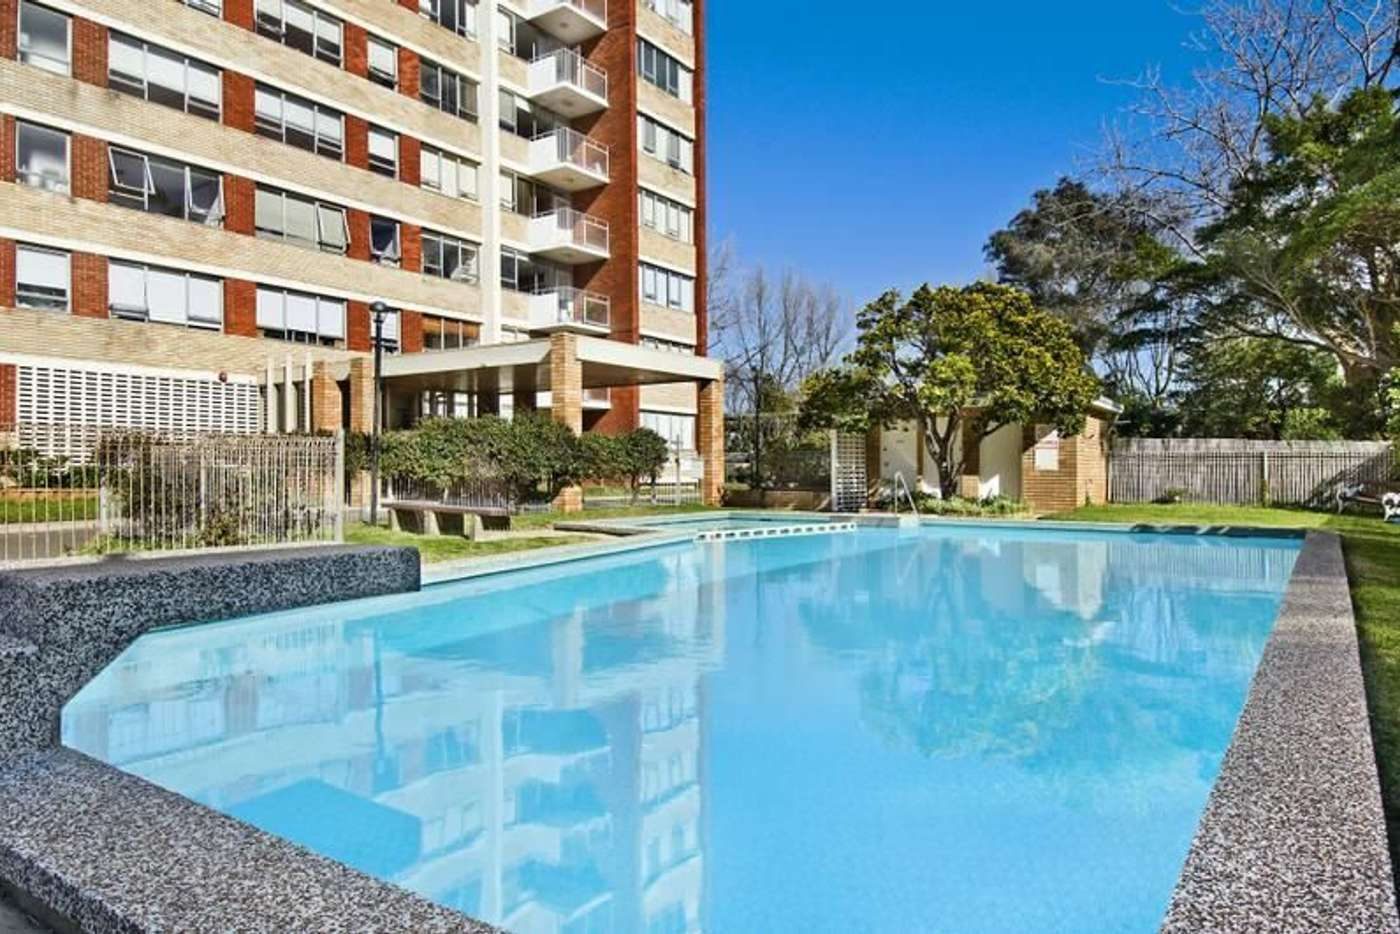 Main view of Homely apartment listing, 23/8 Fullerton Street, Woollahra NSW 2025